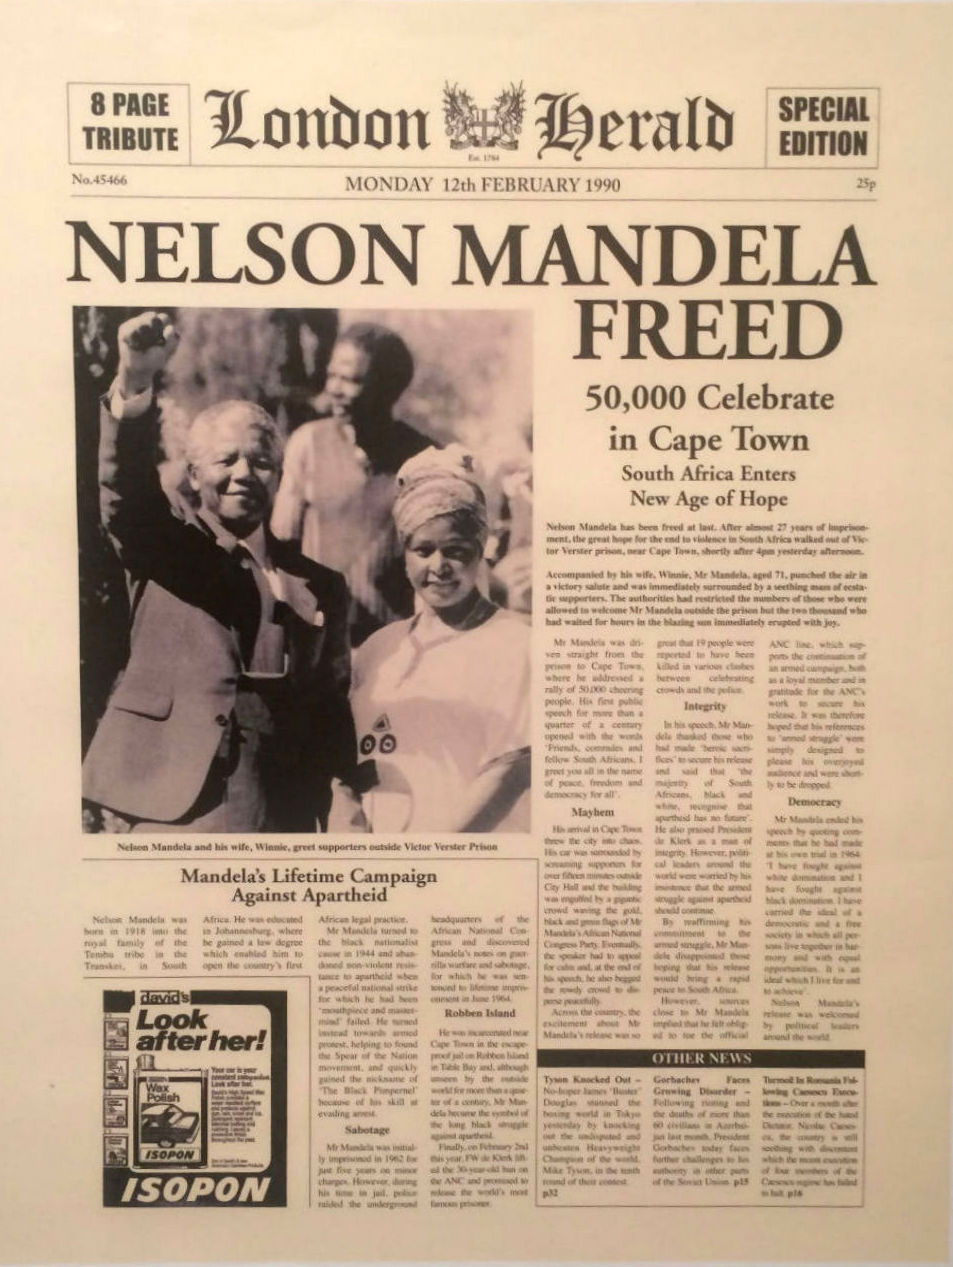 Nelson Mandela Freed From Prison After 27 Years In Captivity February 11th 1990 London Herald Front Page